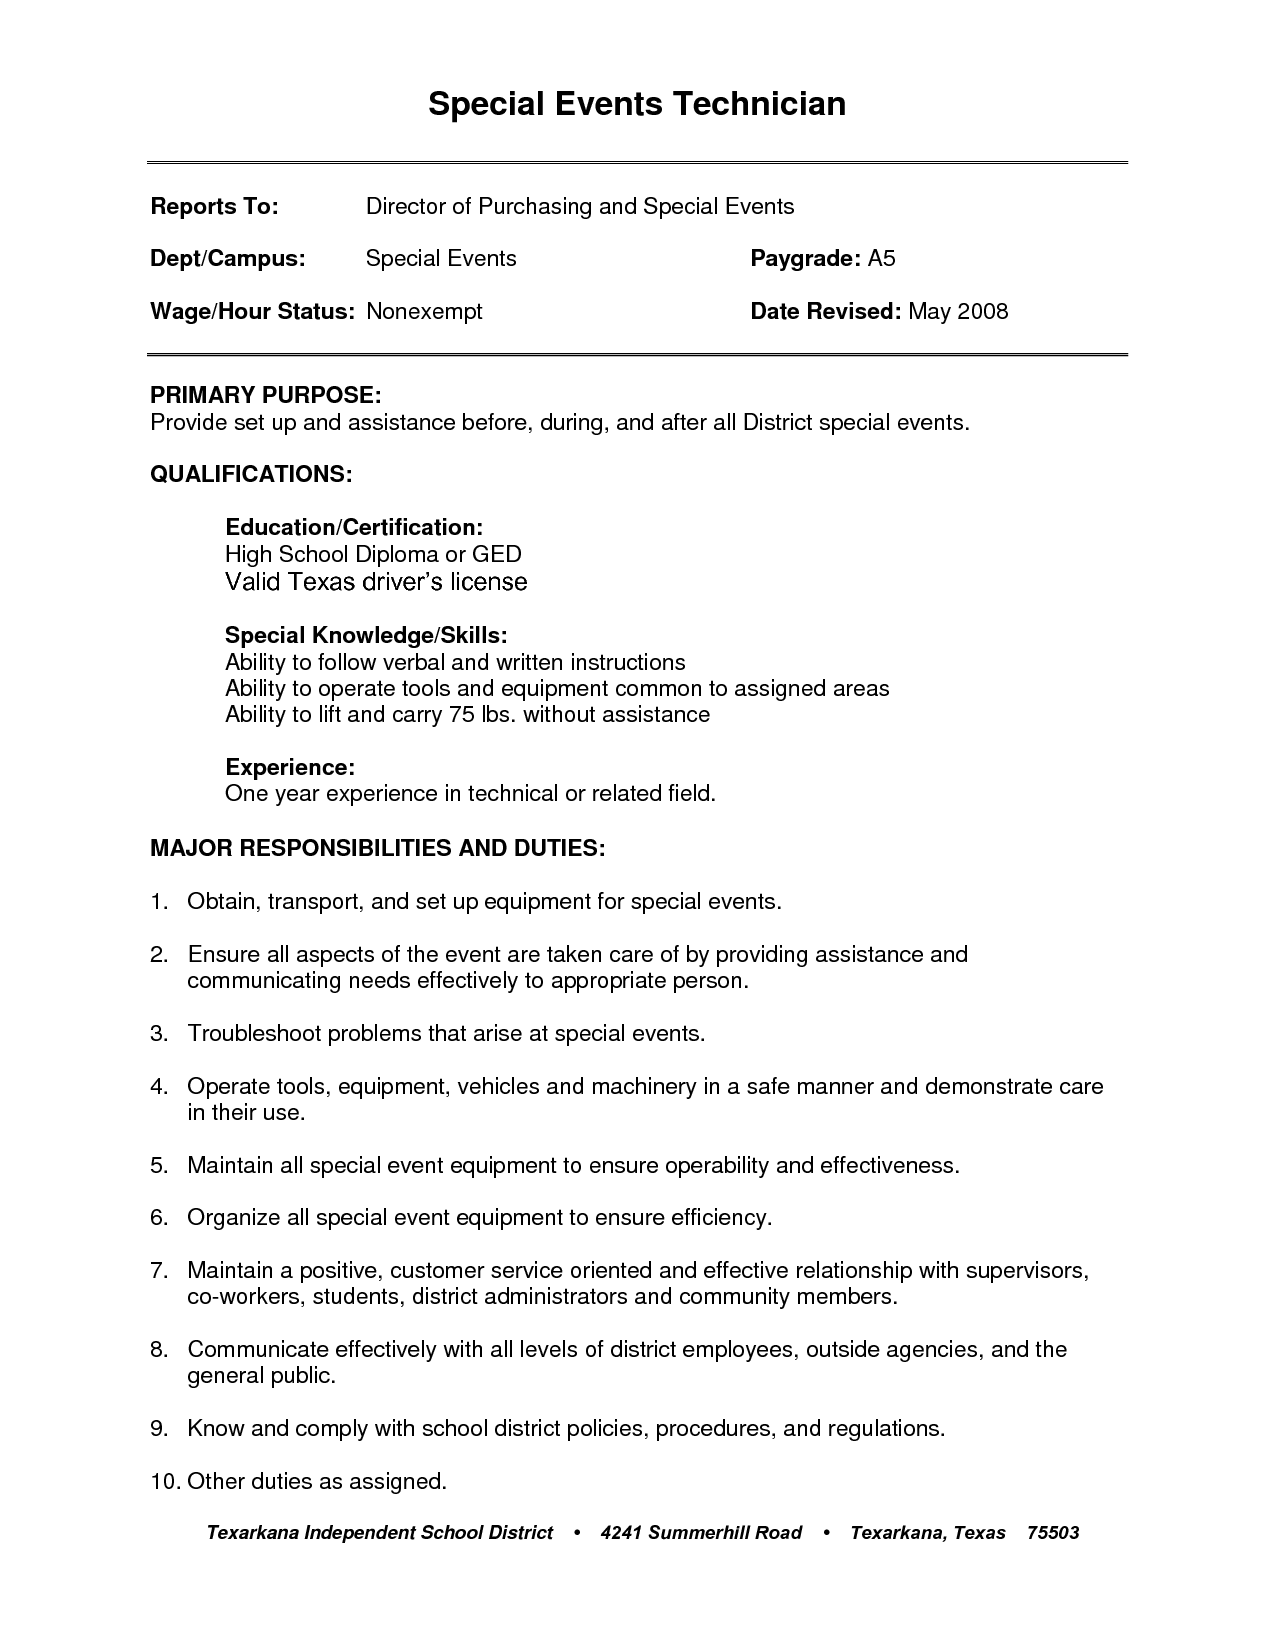 Resume For General Job Teen Objective Cover Skills Labor And Template  General Job Resume